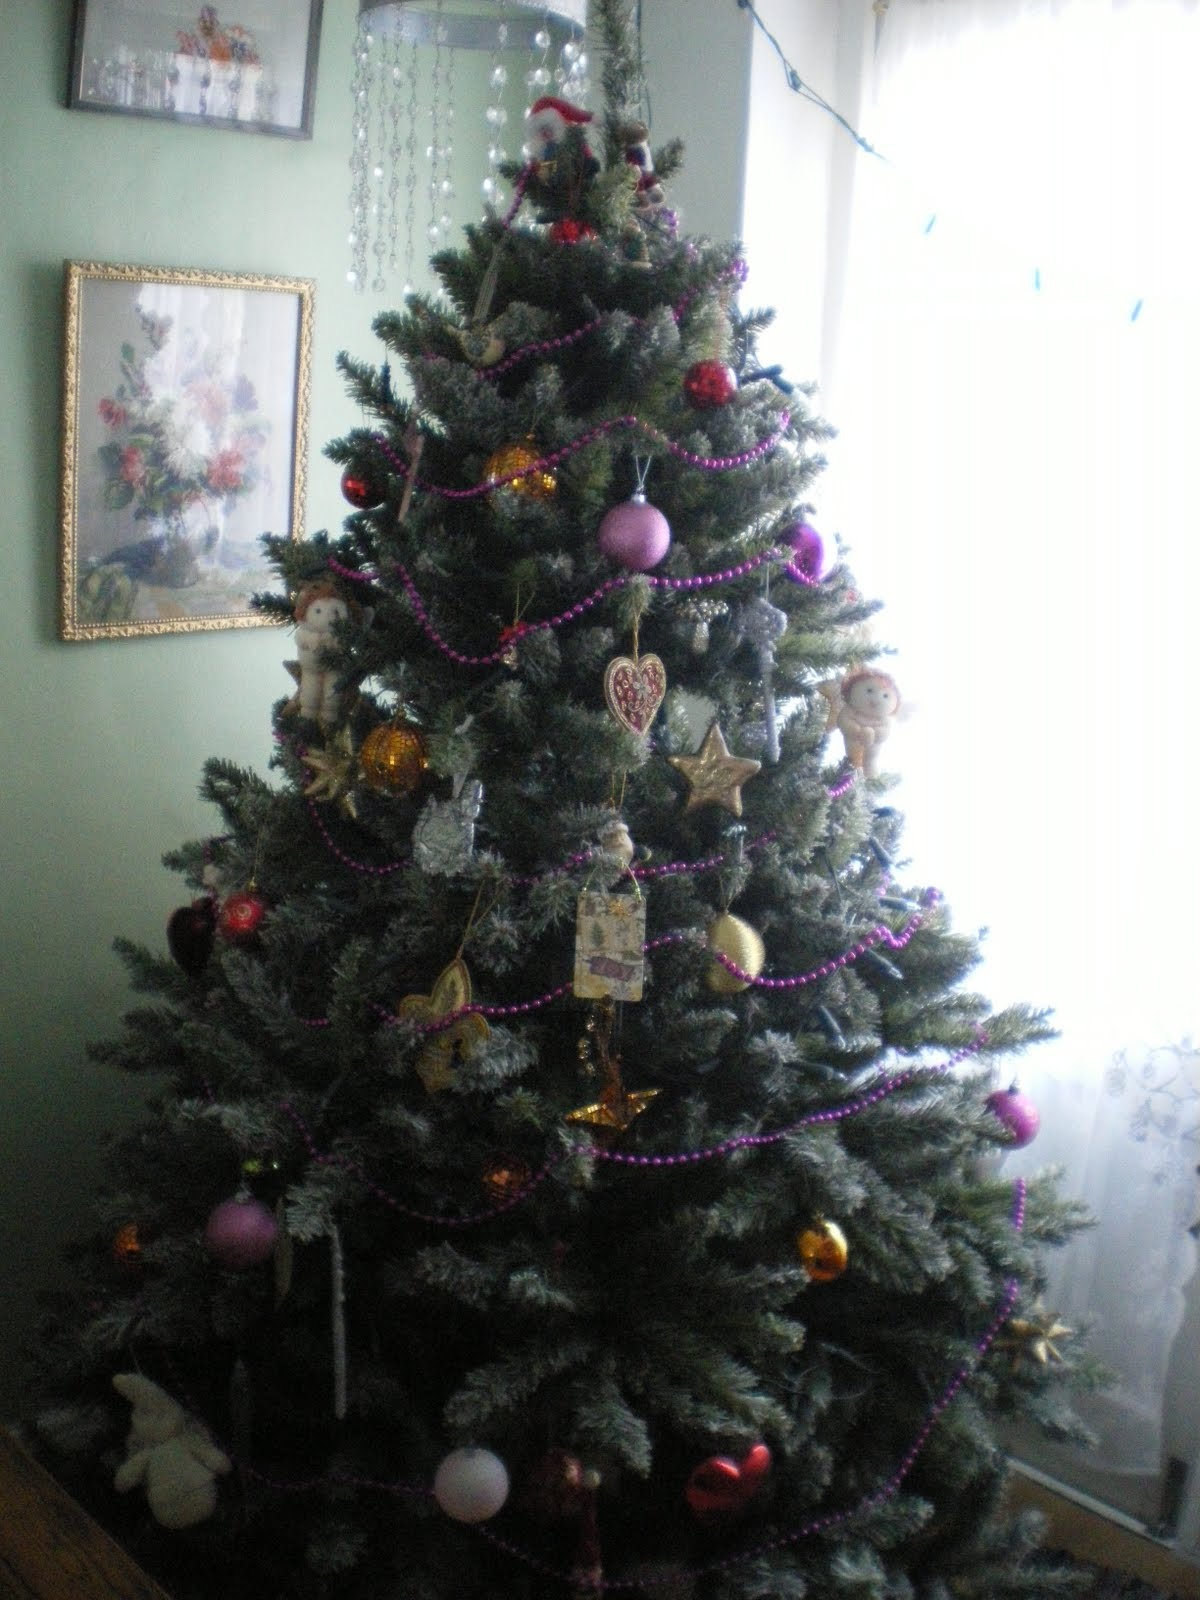 The Shabby Chic Bohemian Christmas Tree Is Up